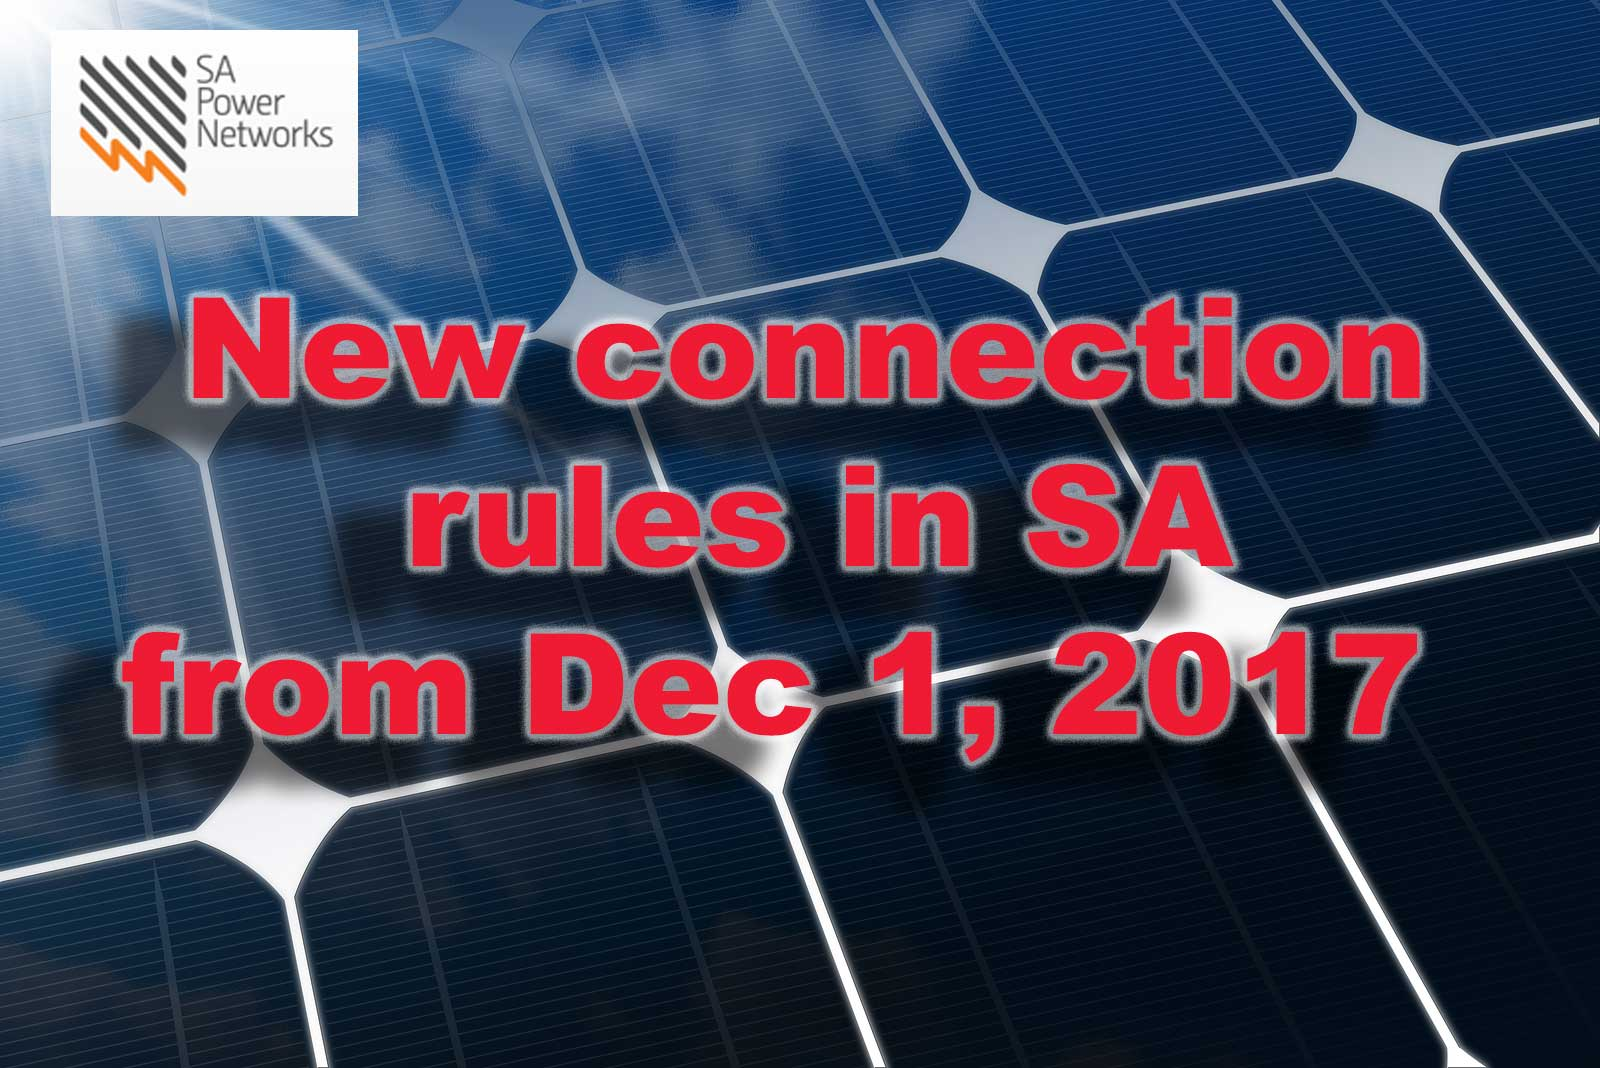 Sa Power Networks Confirms 5kw Inverter Limit For South Australia Iv Wiring And The Frequency Setting